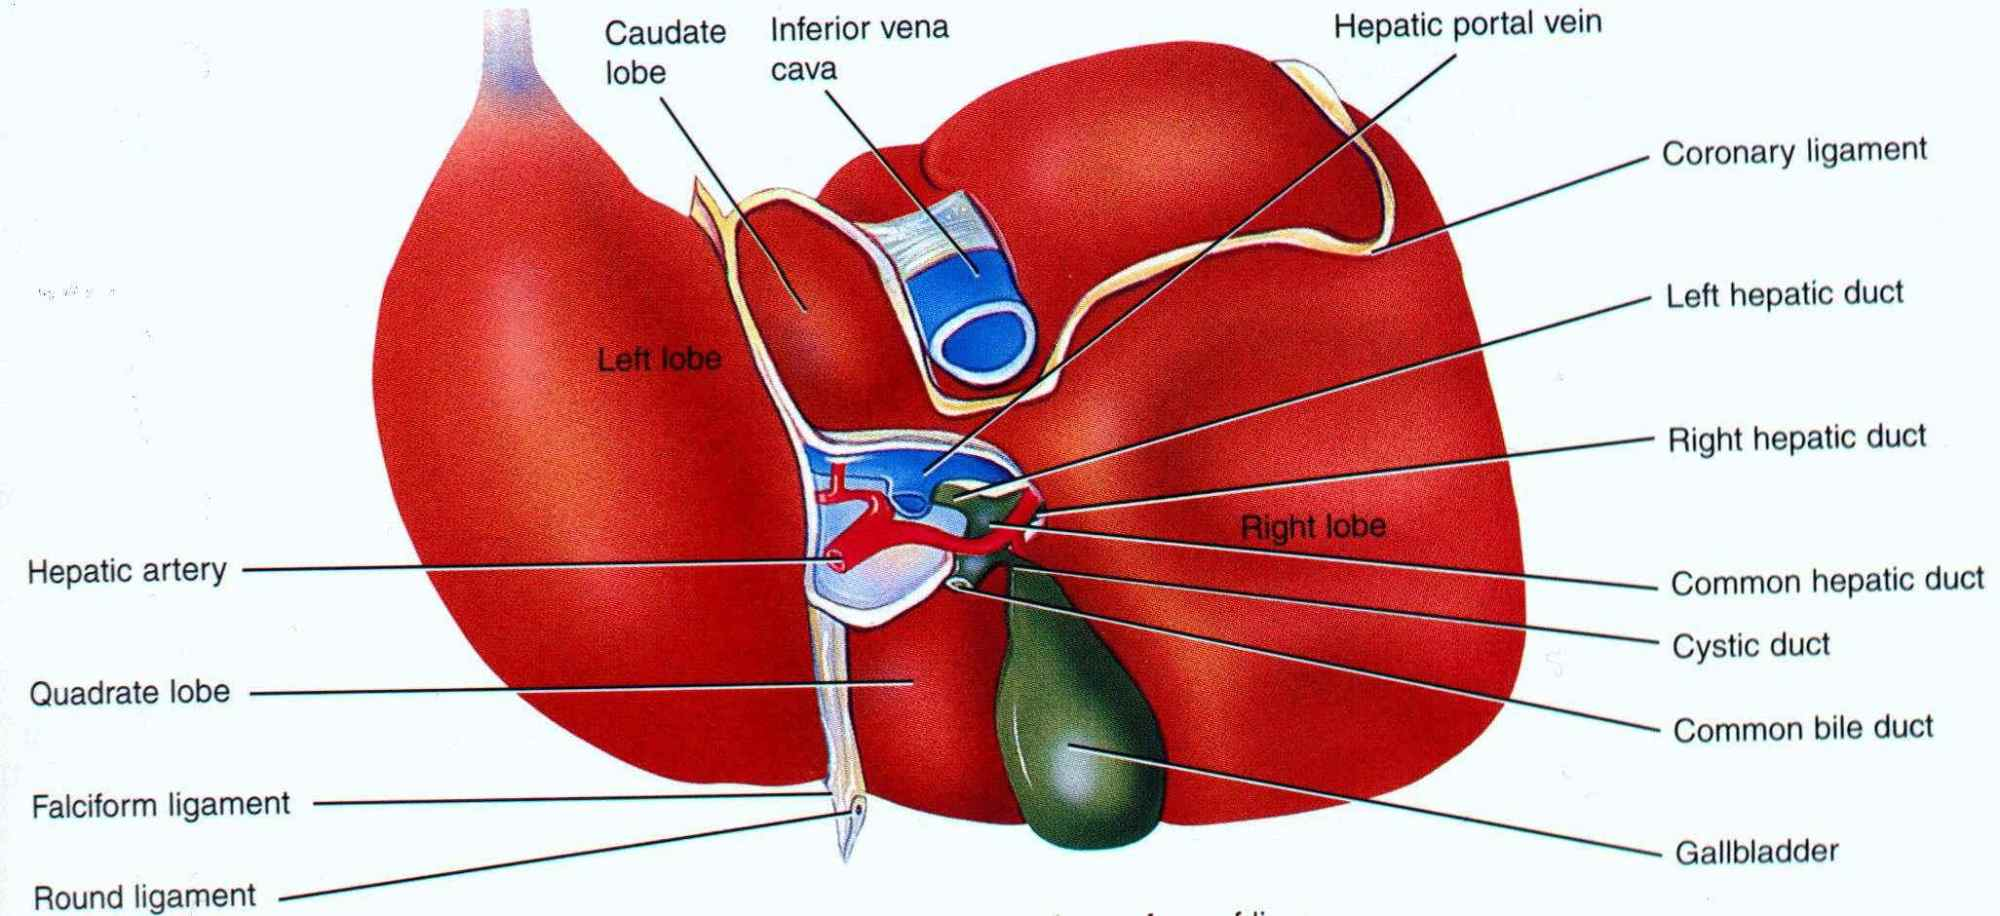 hight resolution of liver structure diagram wpe2 jpg 204017 bytes